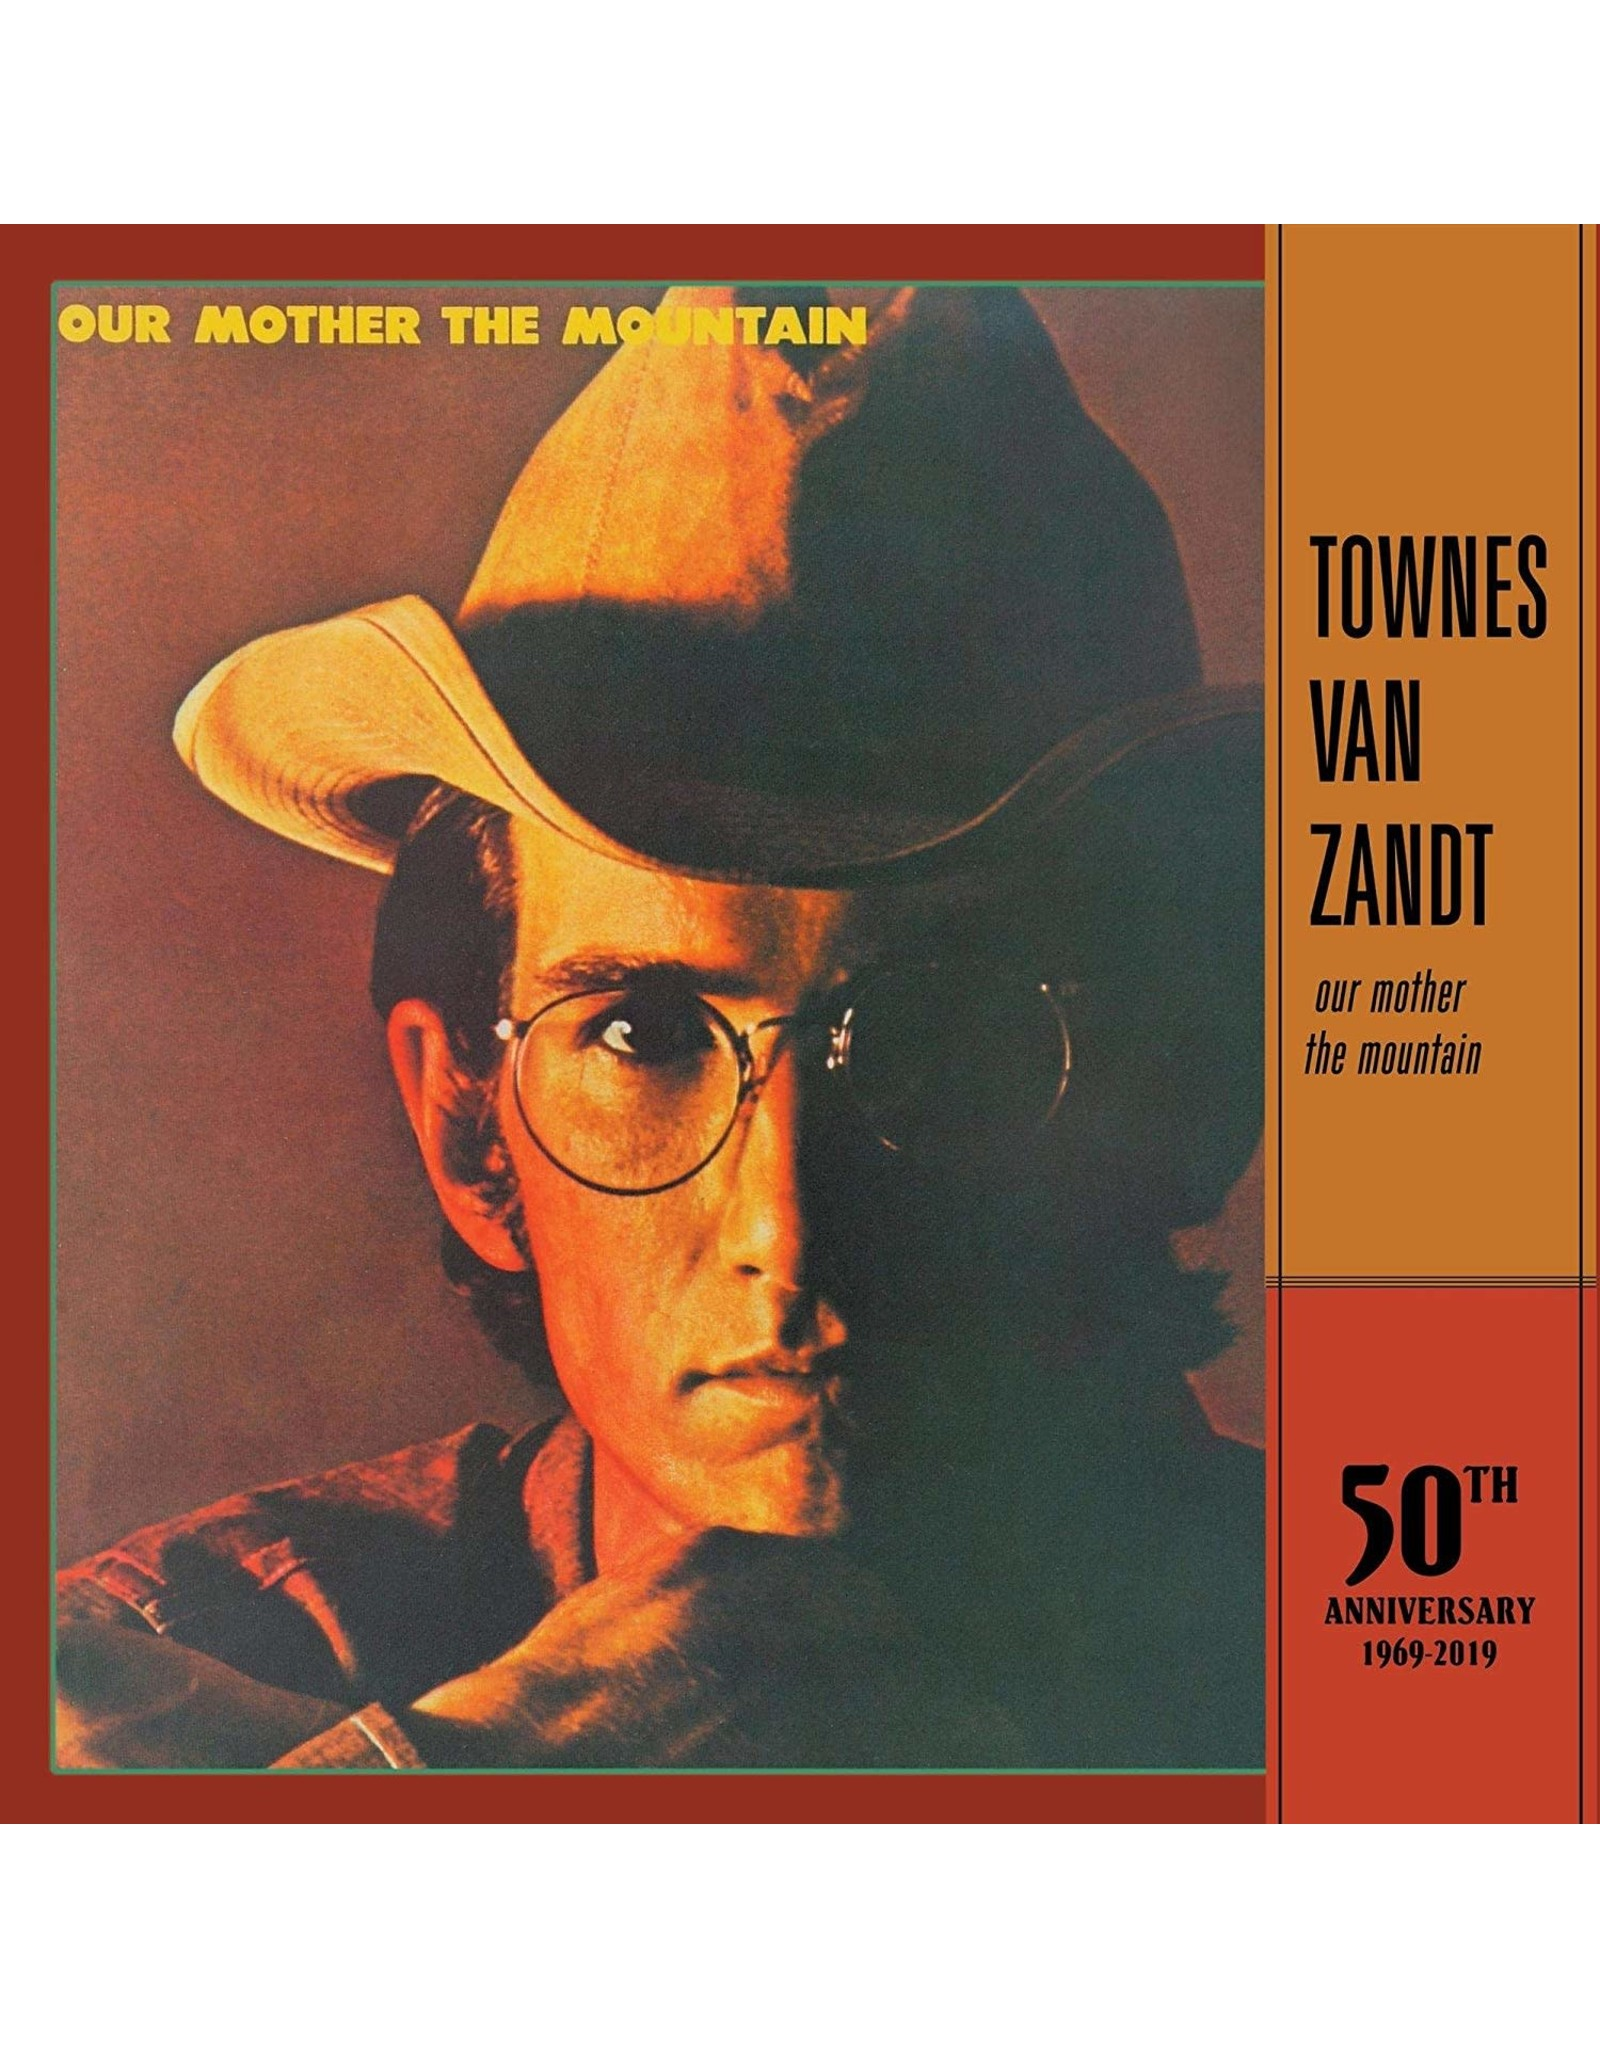 Van Zandt, Townes - Our Mother the Mountain (50th Anniversary) LP